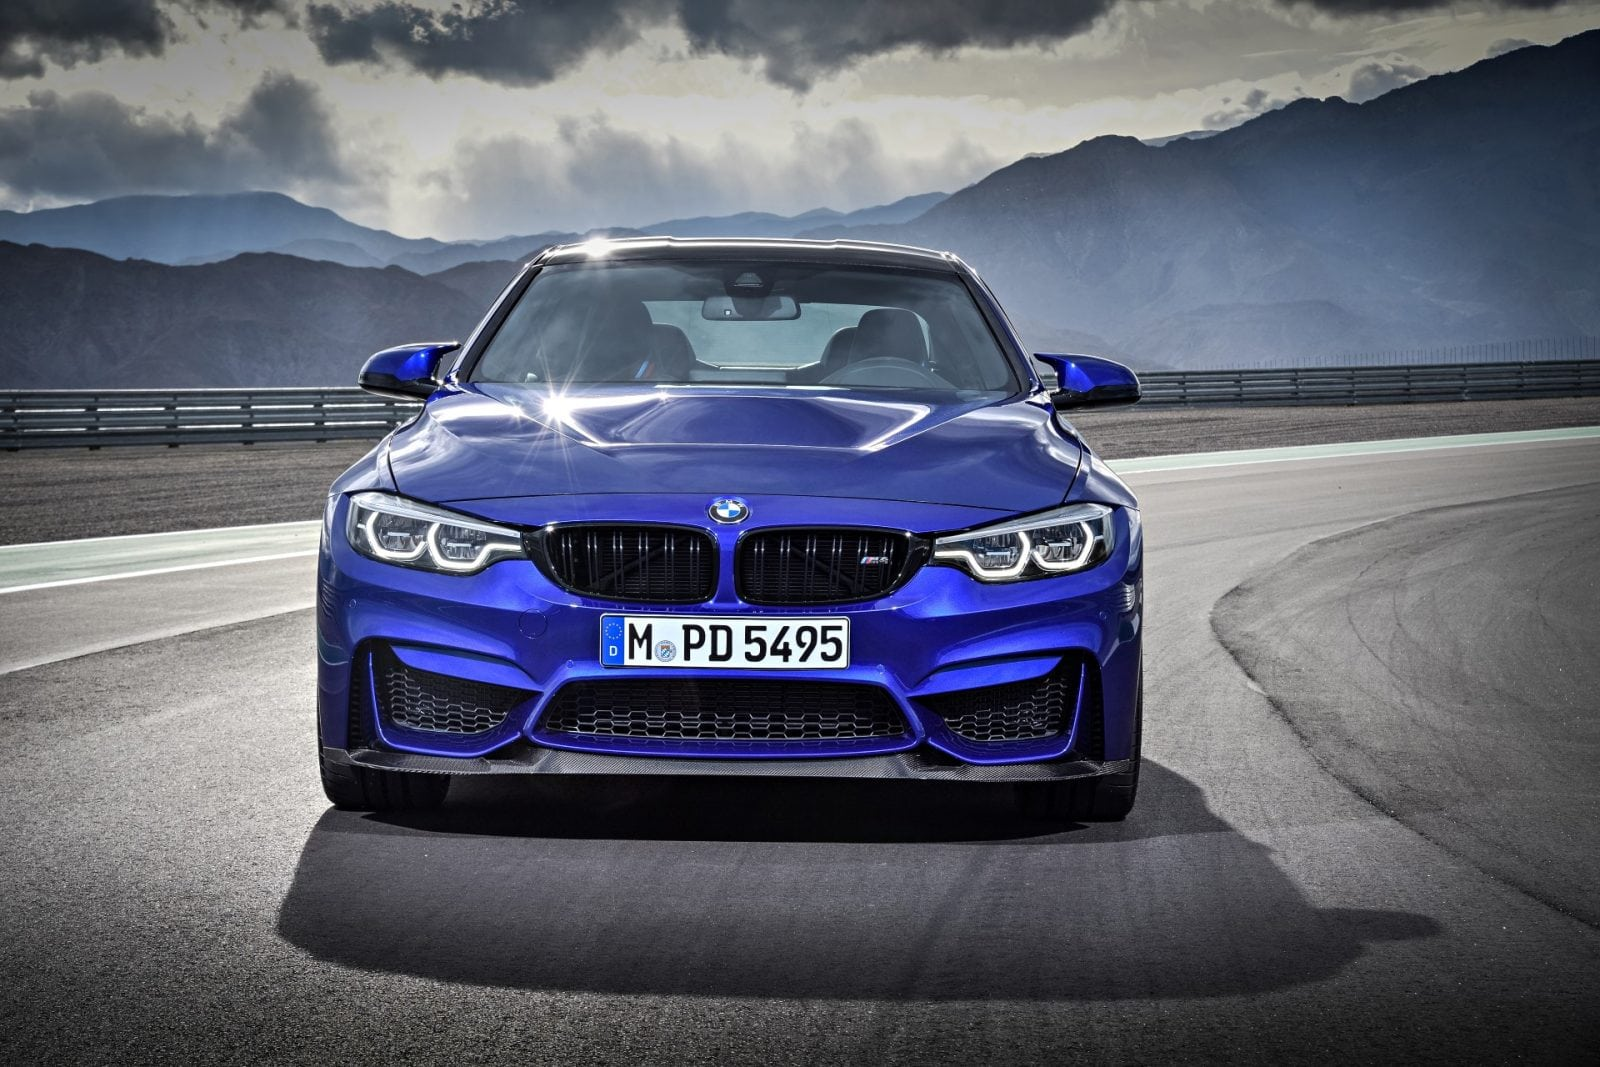 BMW M4 CS 2017 San Marino Blue Metallic